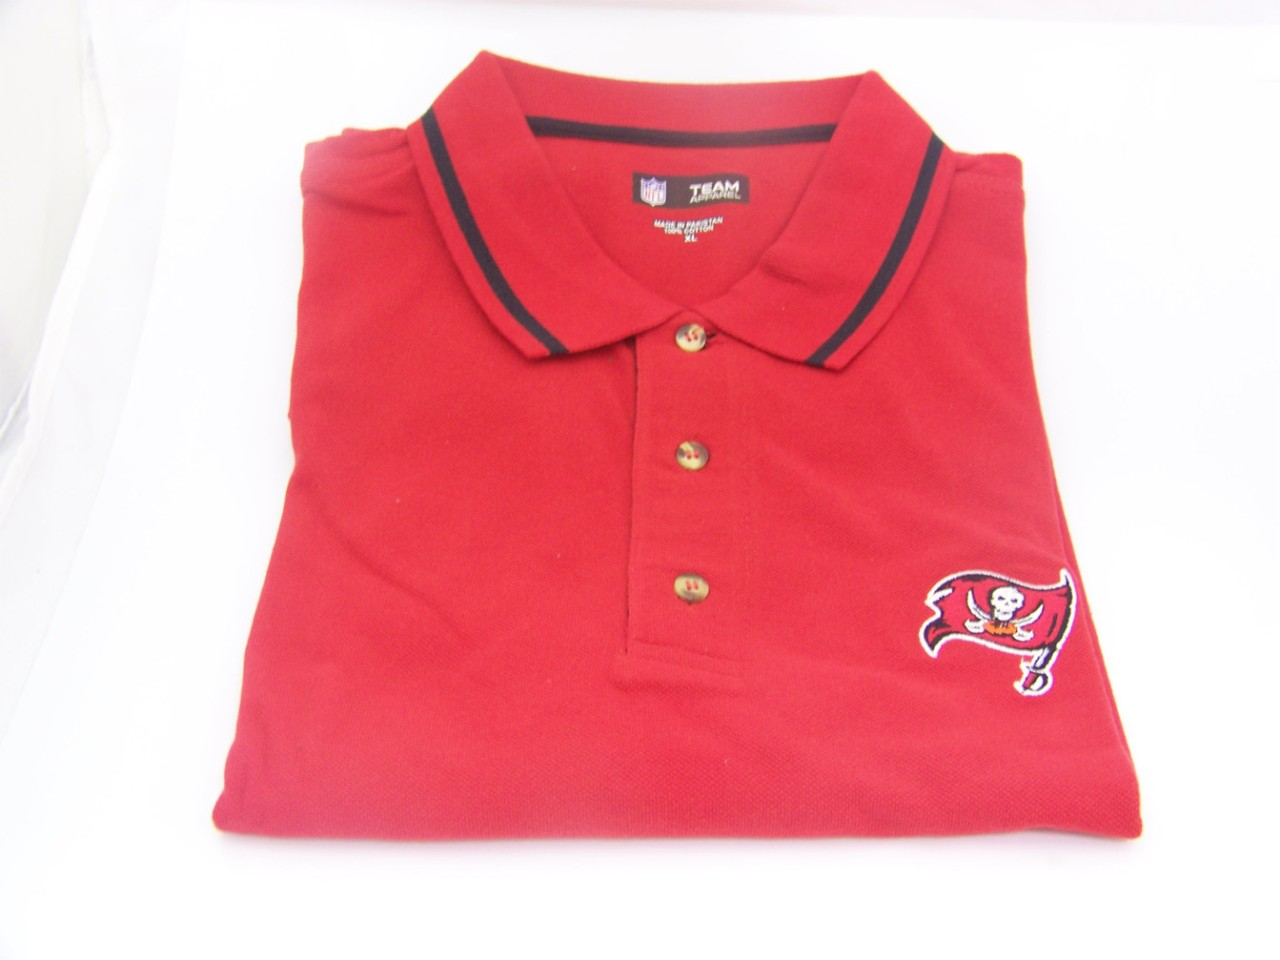 Nfl buccaneers 3 button embroidered polo shirt red b50 ebay for 3 button polo shirts